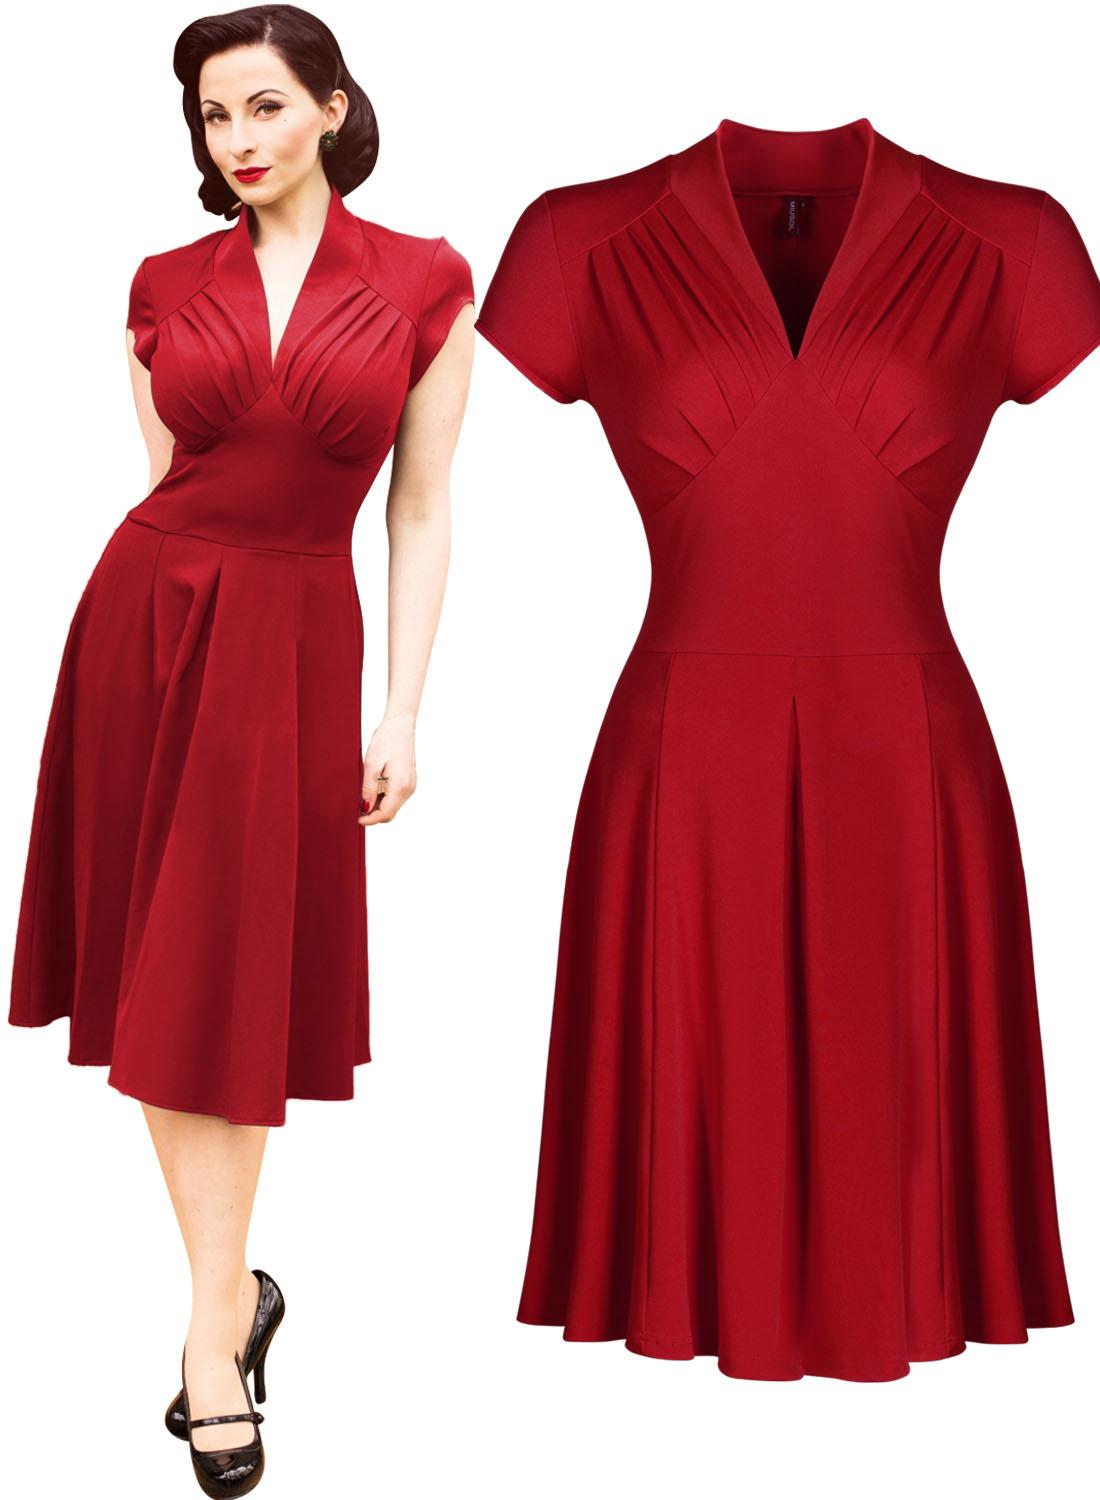 1940s style dresses womenu0027s vintage style retro 1940s shirtwaist flared evening tea dress swing  skaters ball gown DUXFFJV